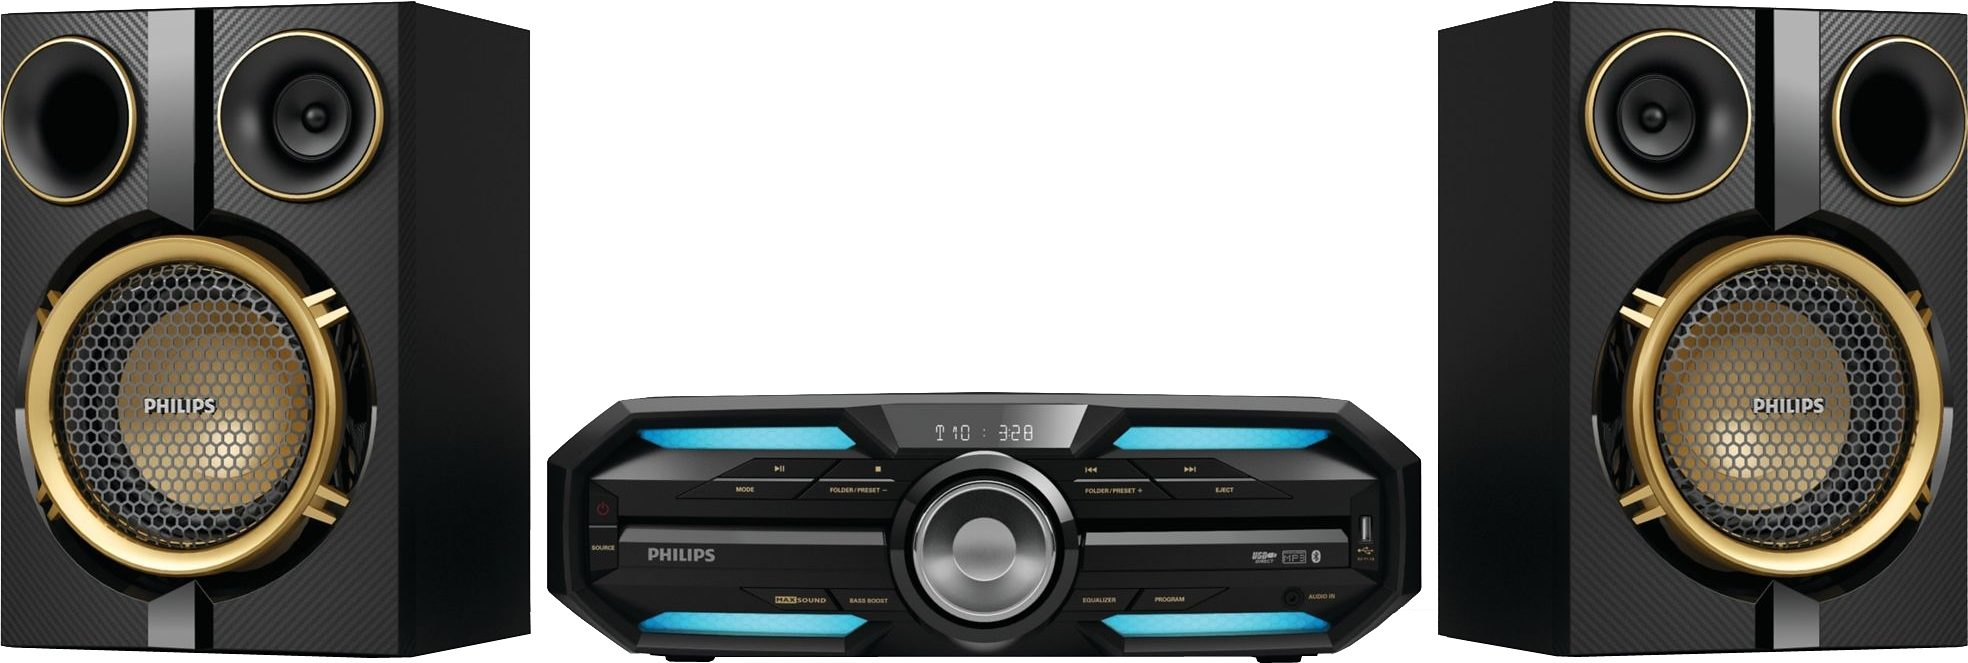 Philips FX25 Minianlage, Bluetooth, NFC, 1x USB